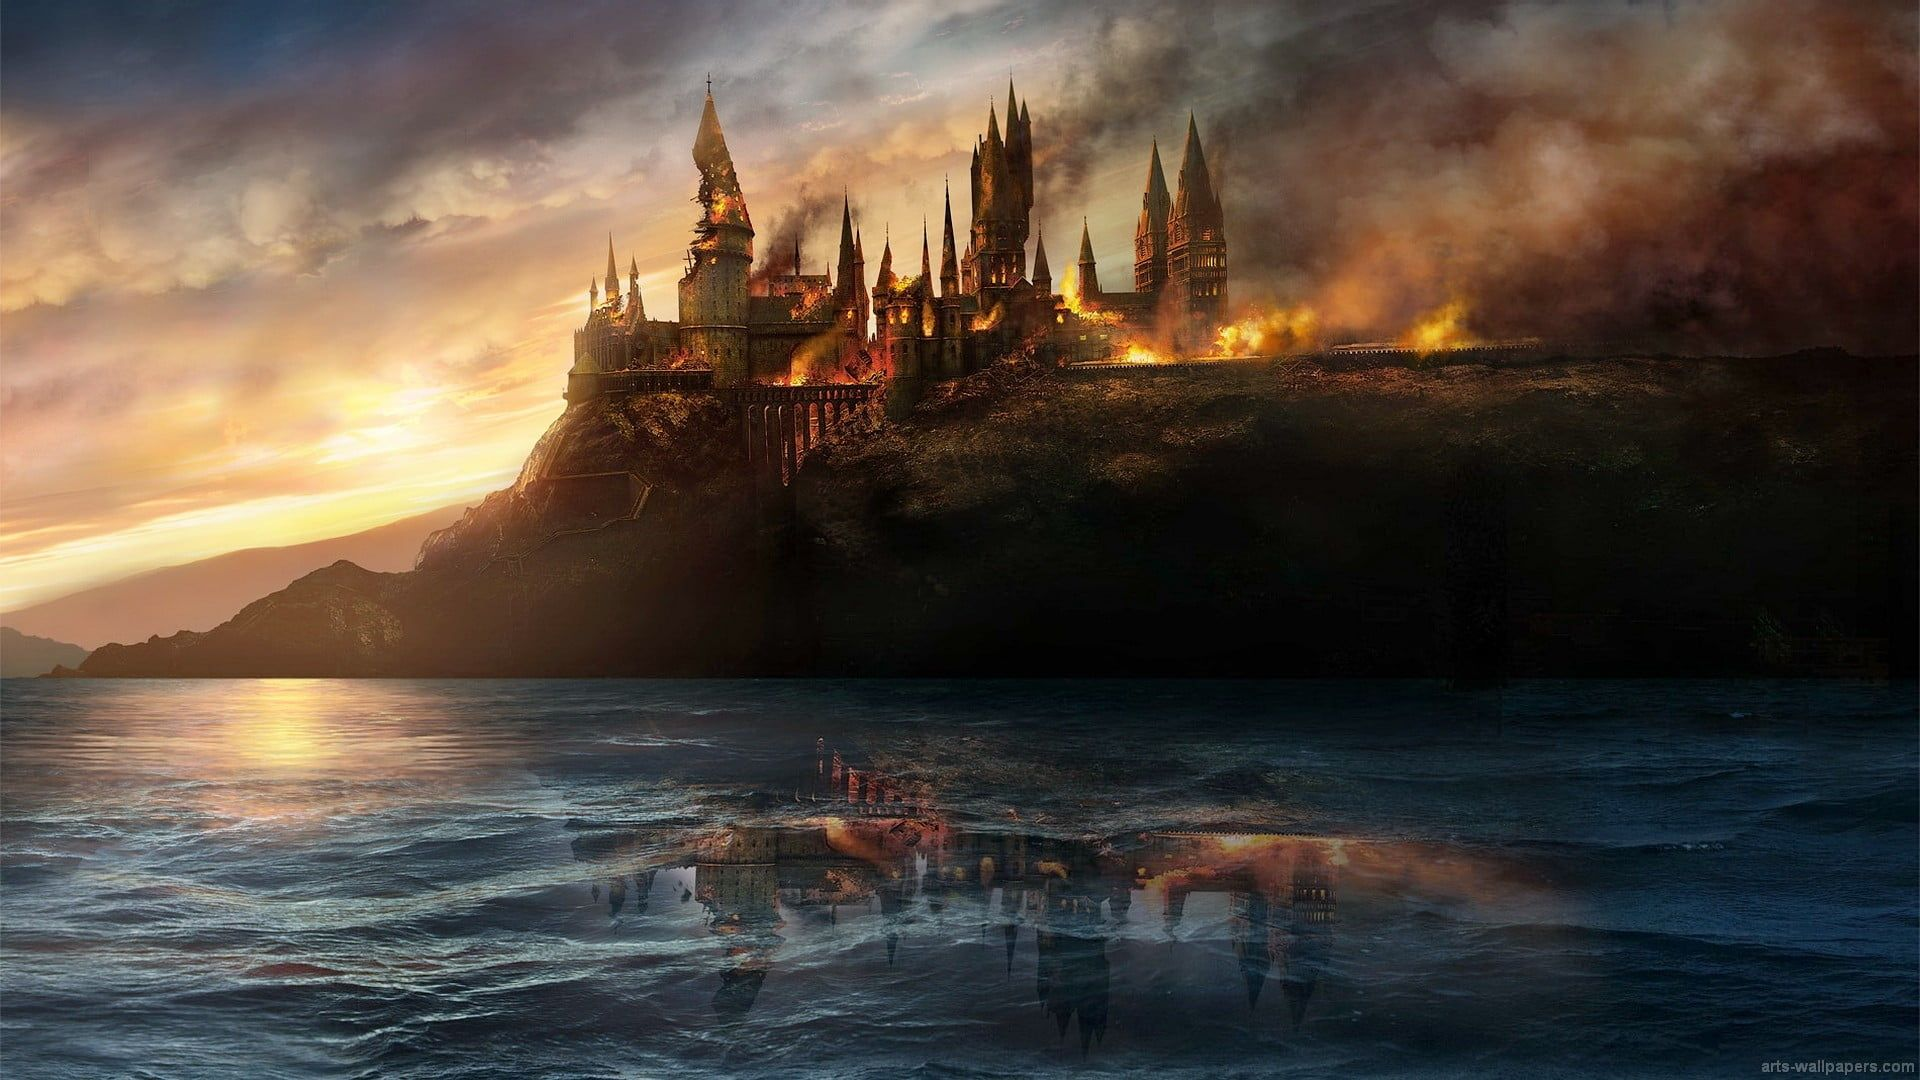 burning castle wallpaper Harry Potter #Hogwarts battle at hogwarts #1080P  #wall… | Desktop wallpaper harry potter, Harry potter wallpaper, Harry  potter fan theories